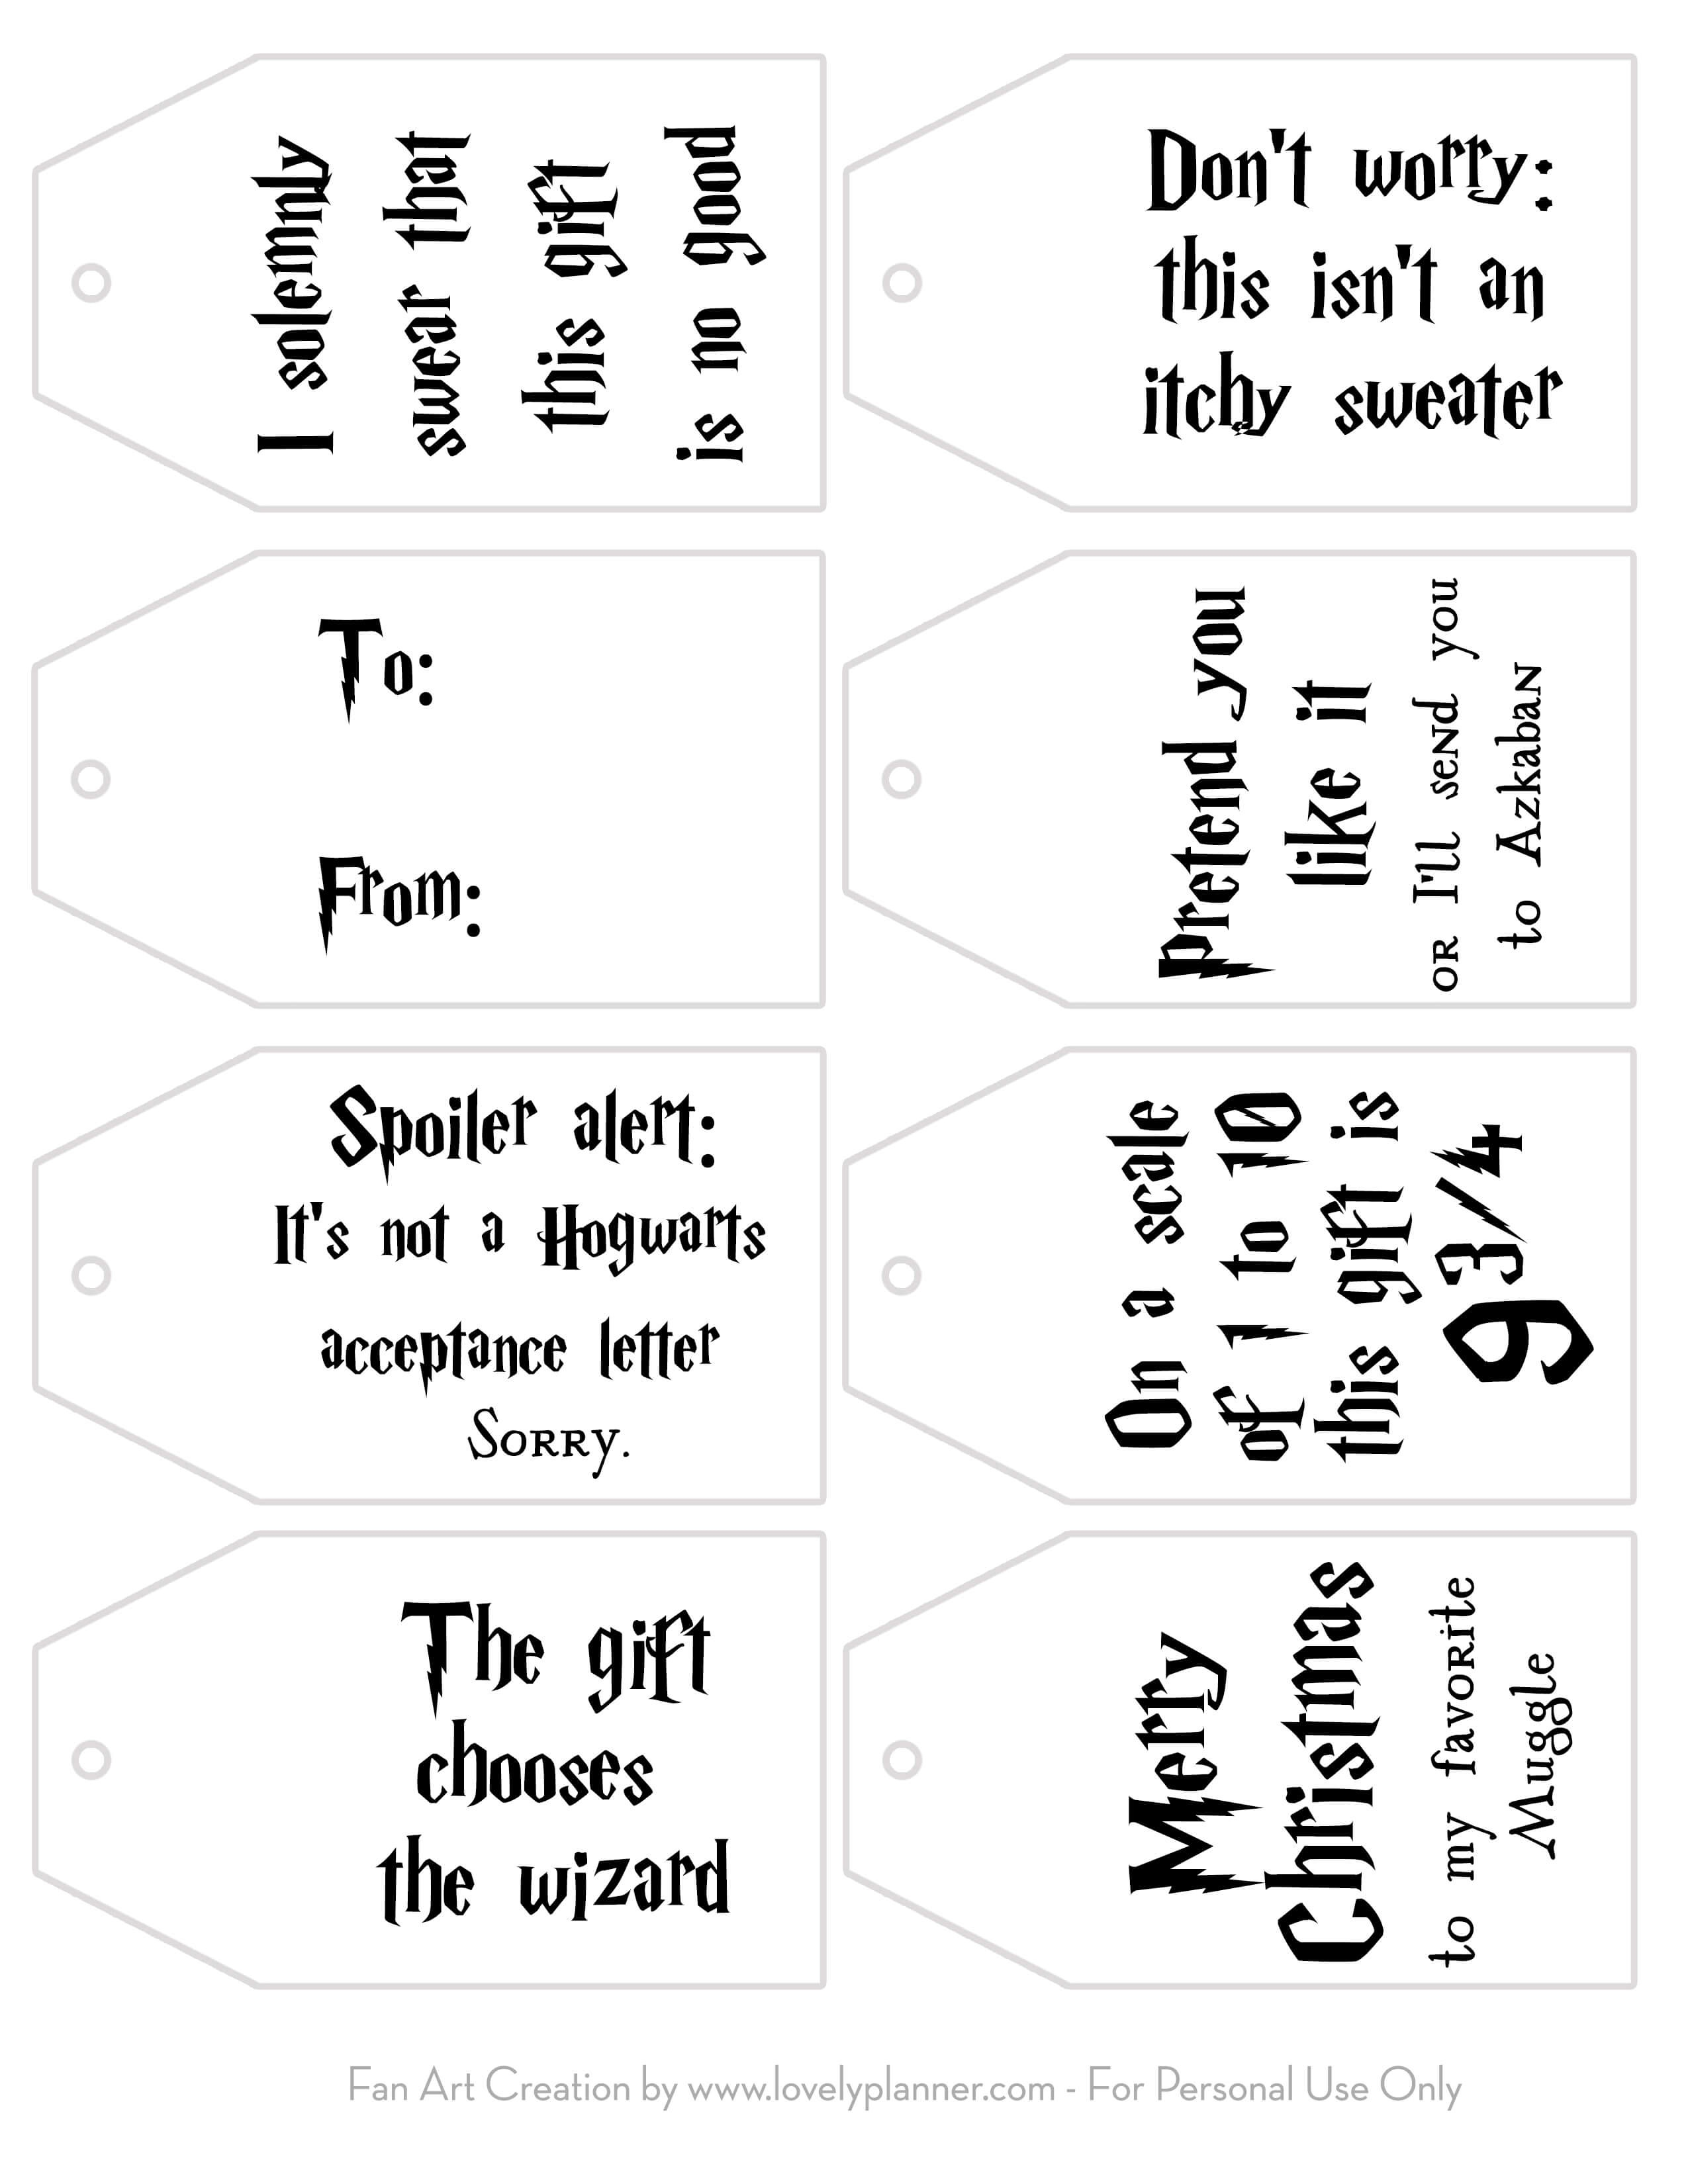 Free Printable Harry Potter Gift Tags For Christmas - Lovely Planner - Christmas Gift Tags Free Printable Black And White